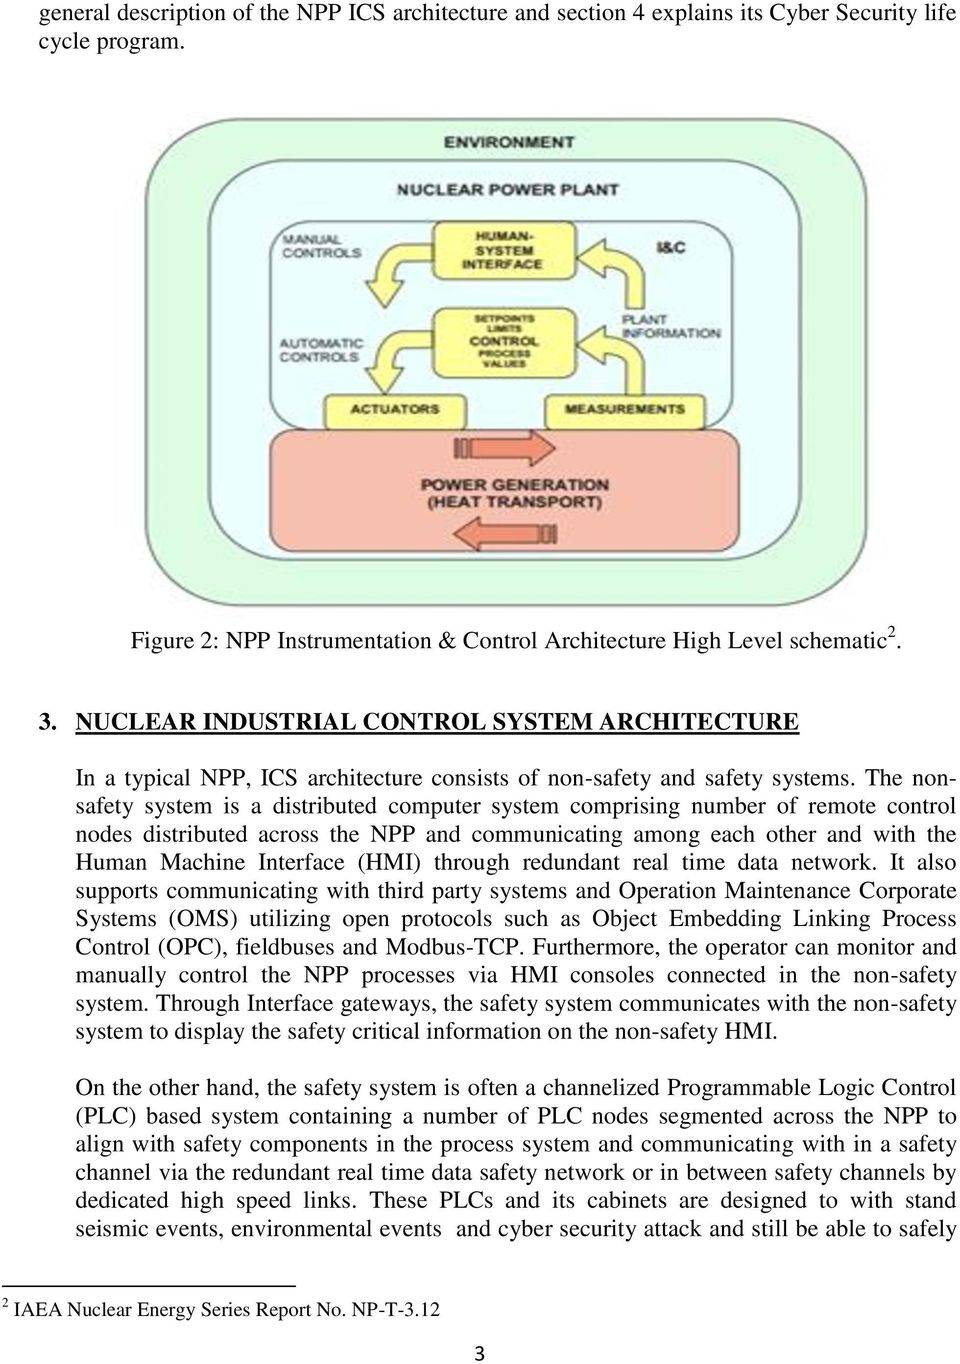 The nonsafety system is a distributed computer system comprising number of remote control nodes distributed across the NPP and communicating among each other and with the Human Machine Interface